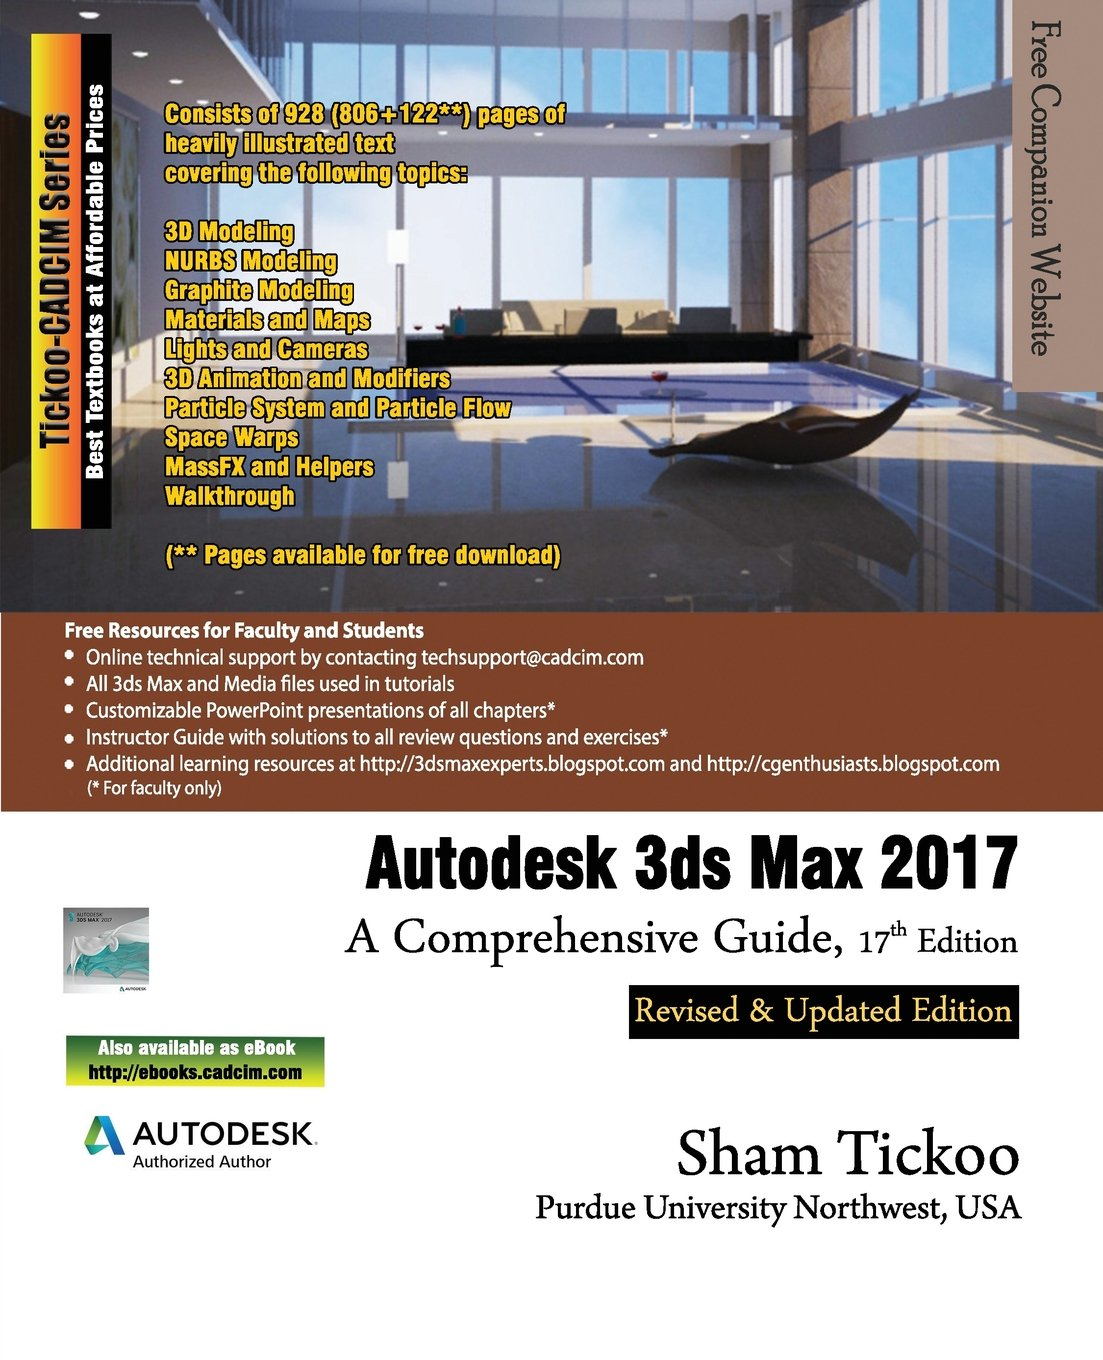 autodesk 3ds max 2017 a comprehensive guide prof sham tickoo rh amazon com 3DS XL Autodesk Maya